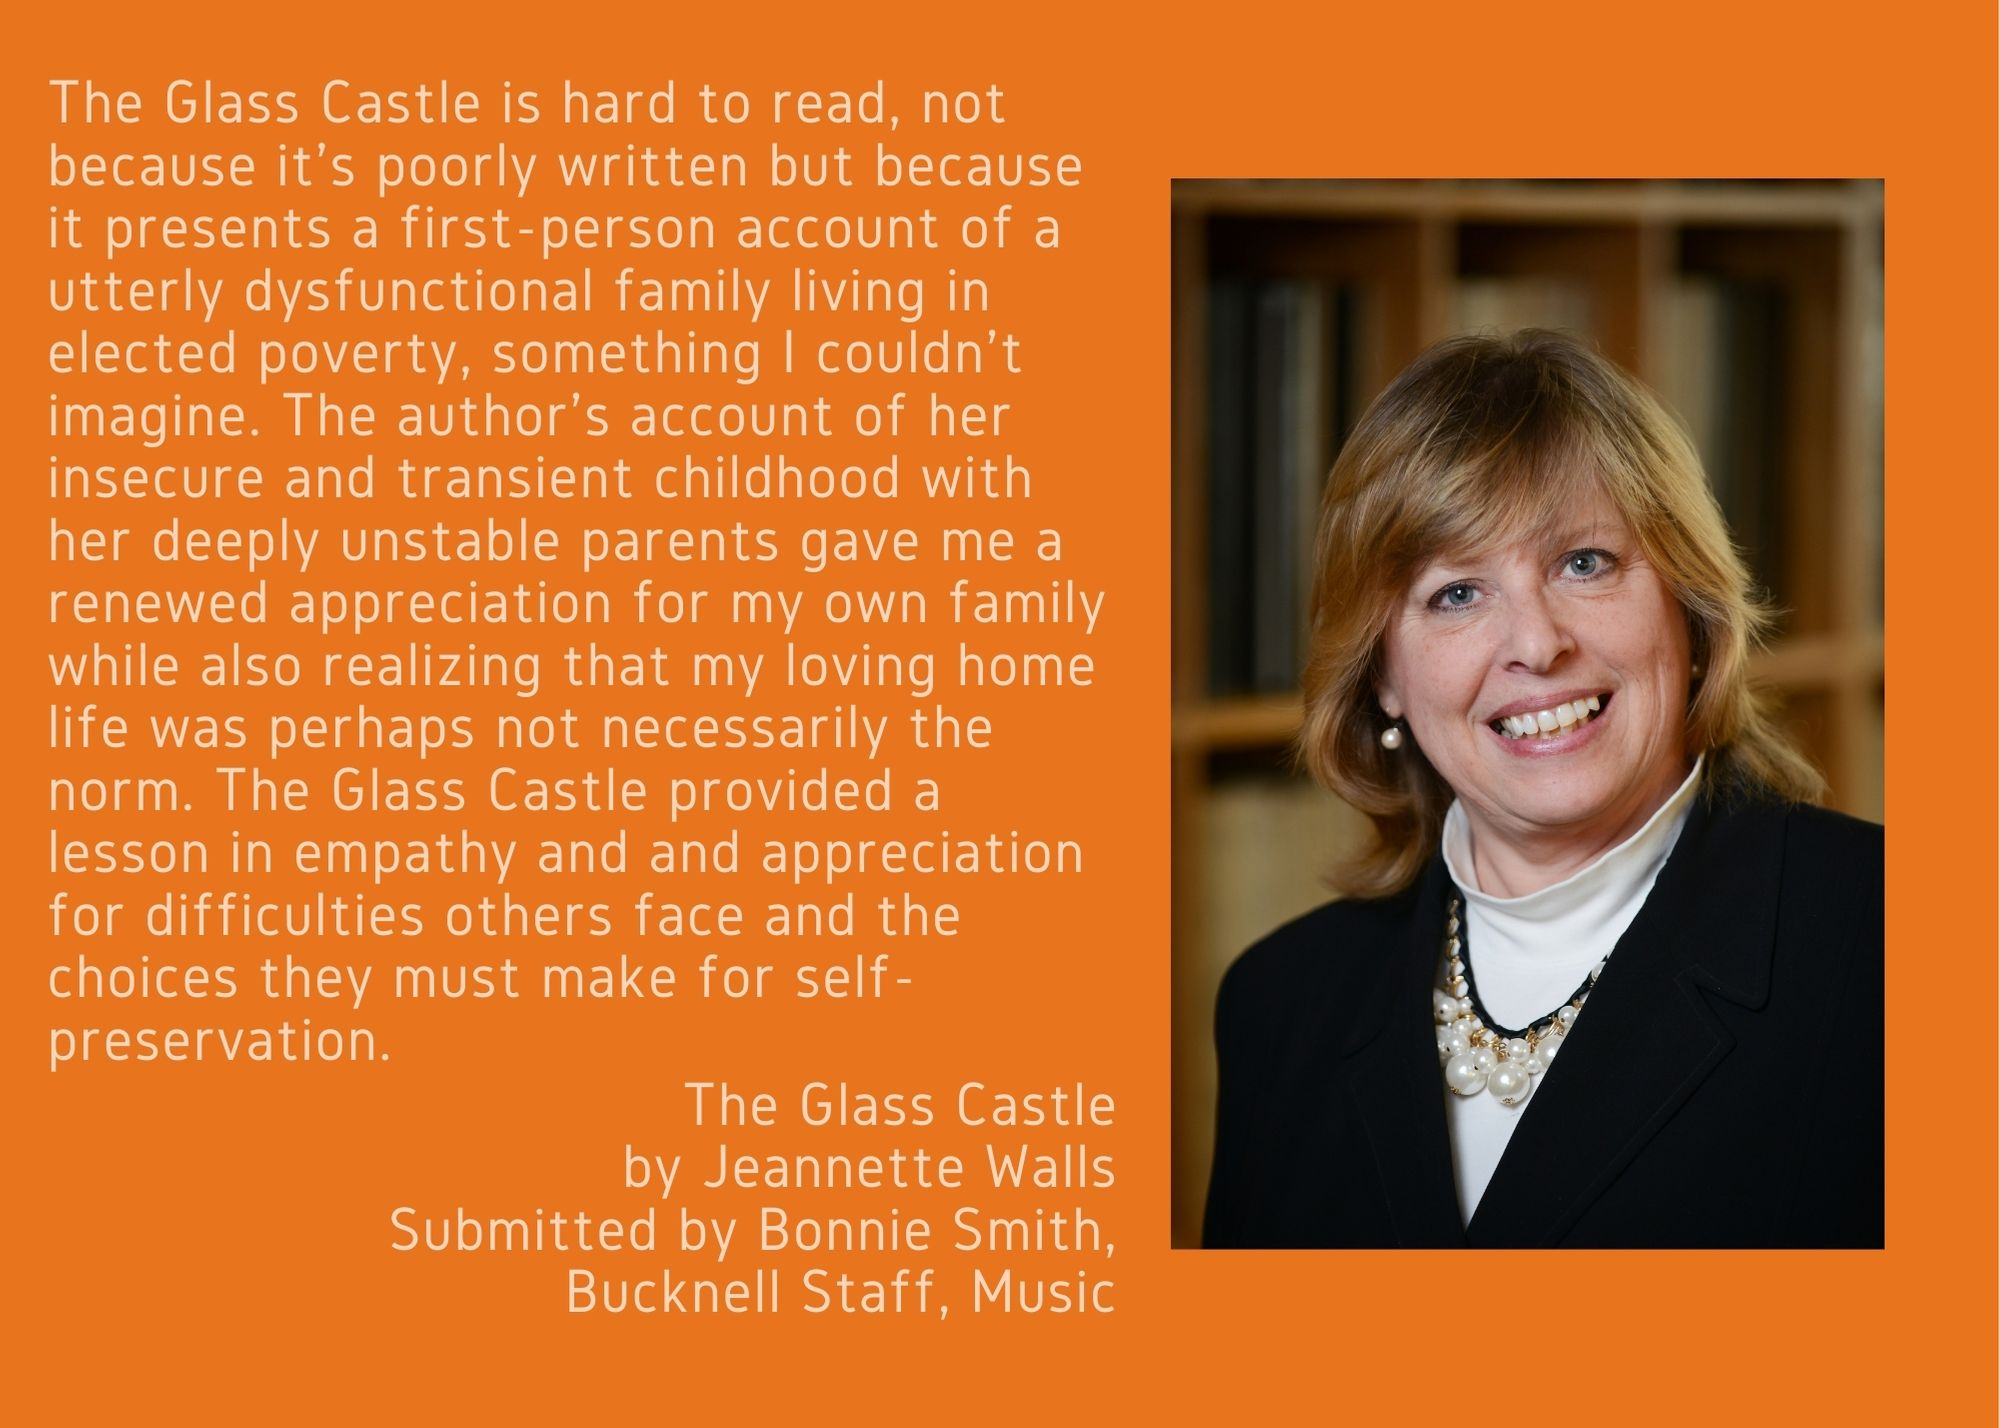 Bonnie Smith and The Glass Castle